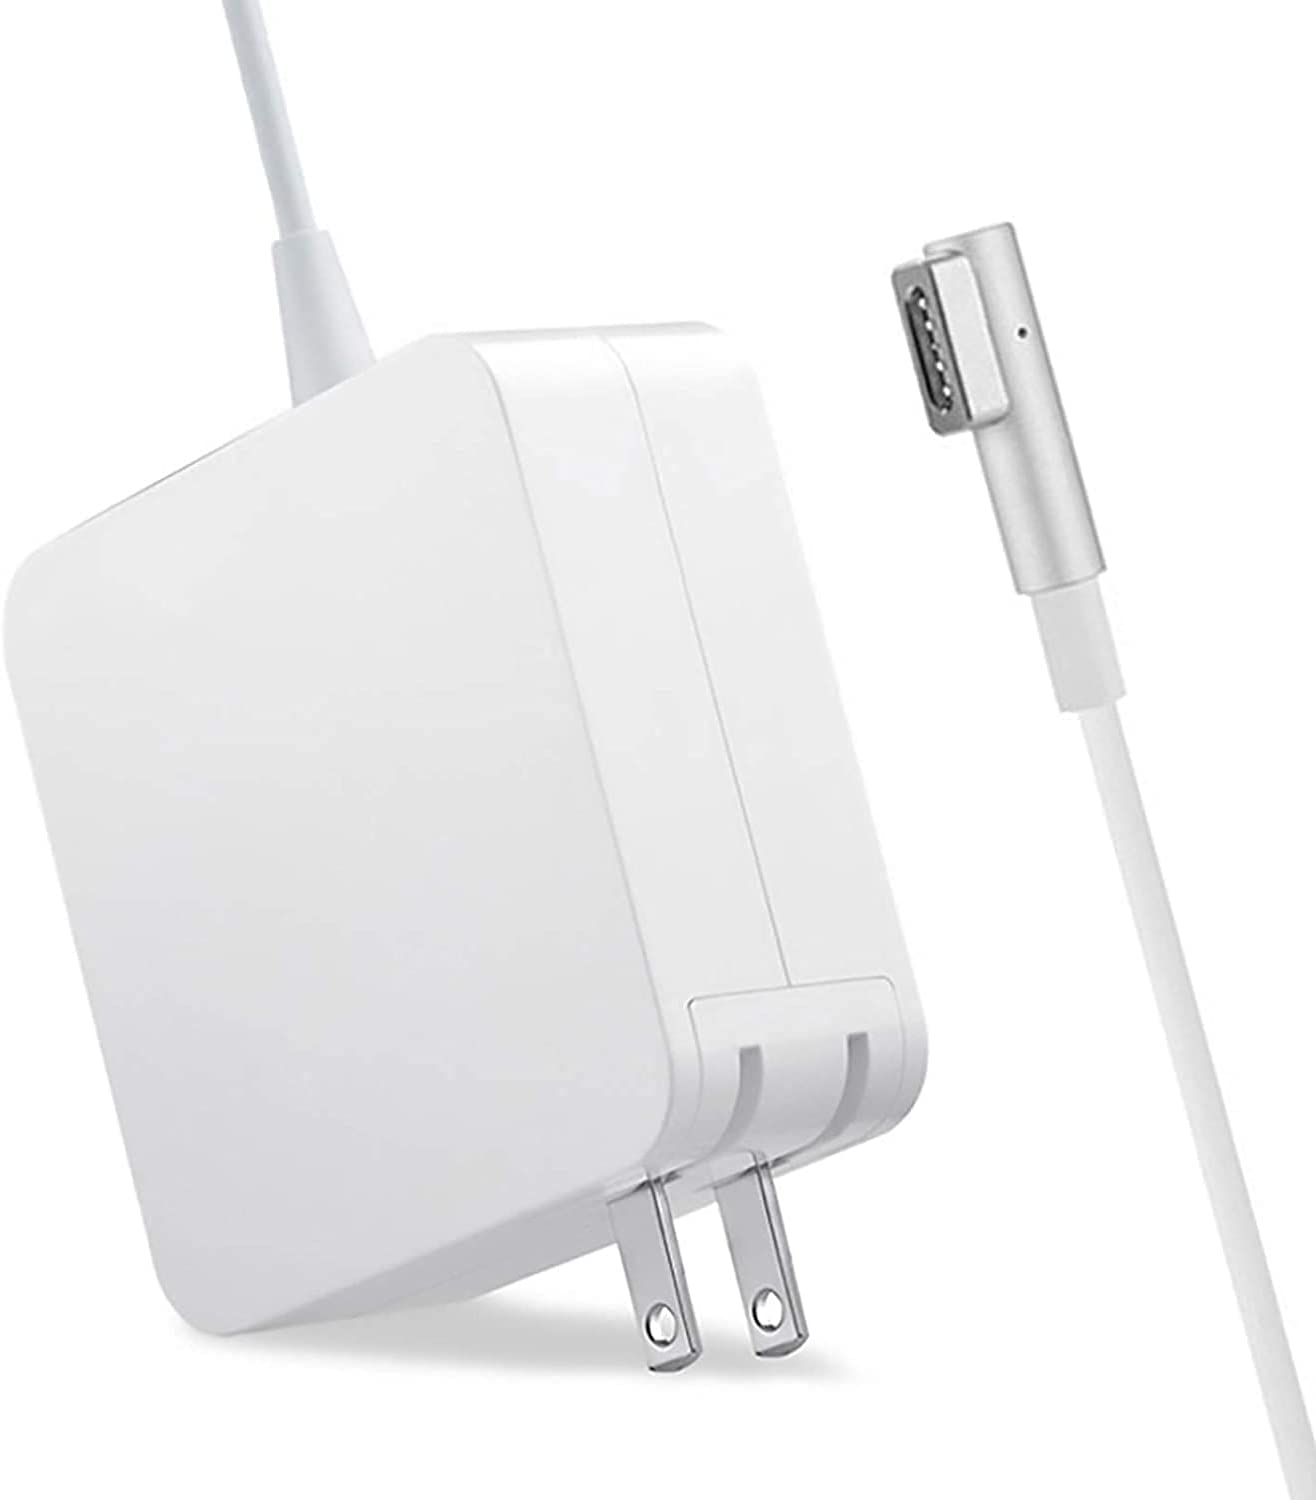 Book Pro Charger 85W L-Tip Power Adapter Charger Cord for Old MaBook Pro 15-inch and 17-inch (Before Mid 2012 Models)